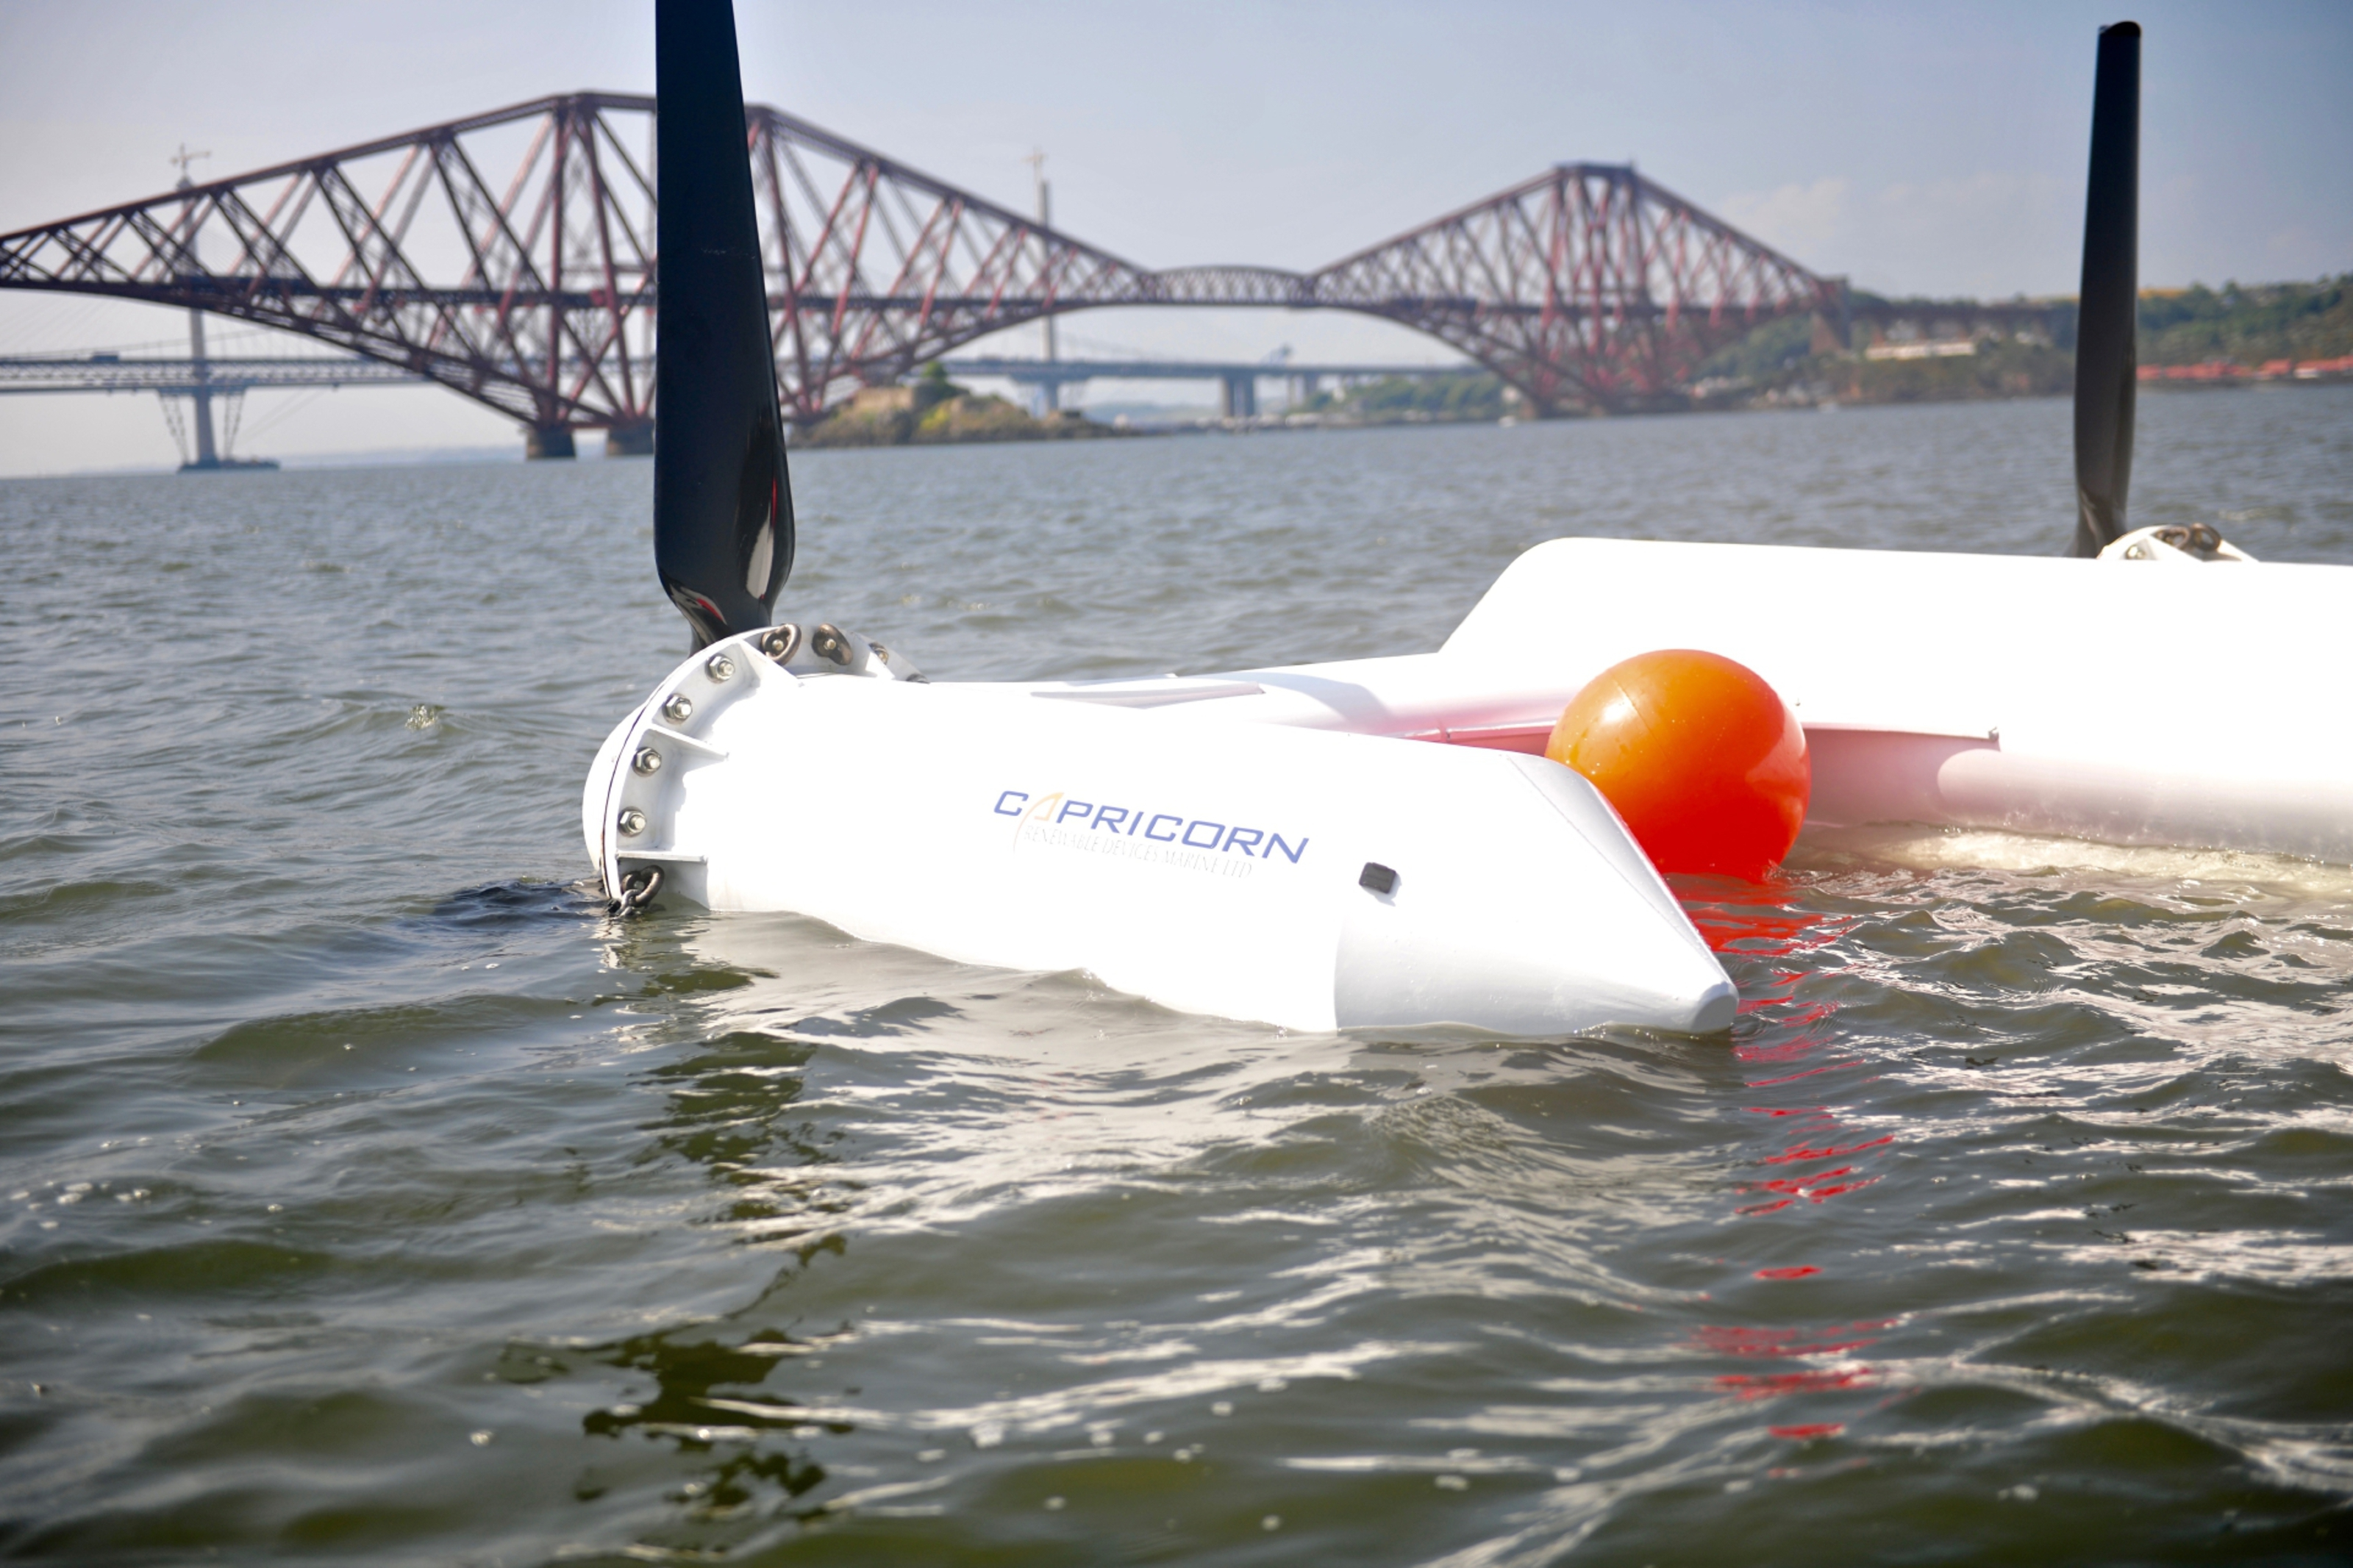 Capricorn prototype in the Firth of Forth.